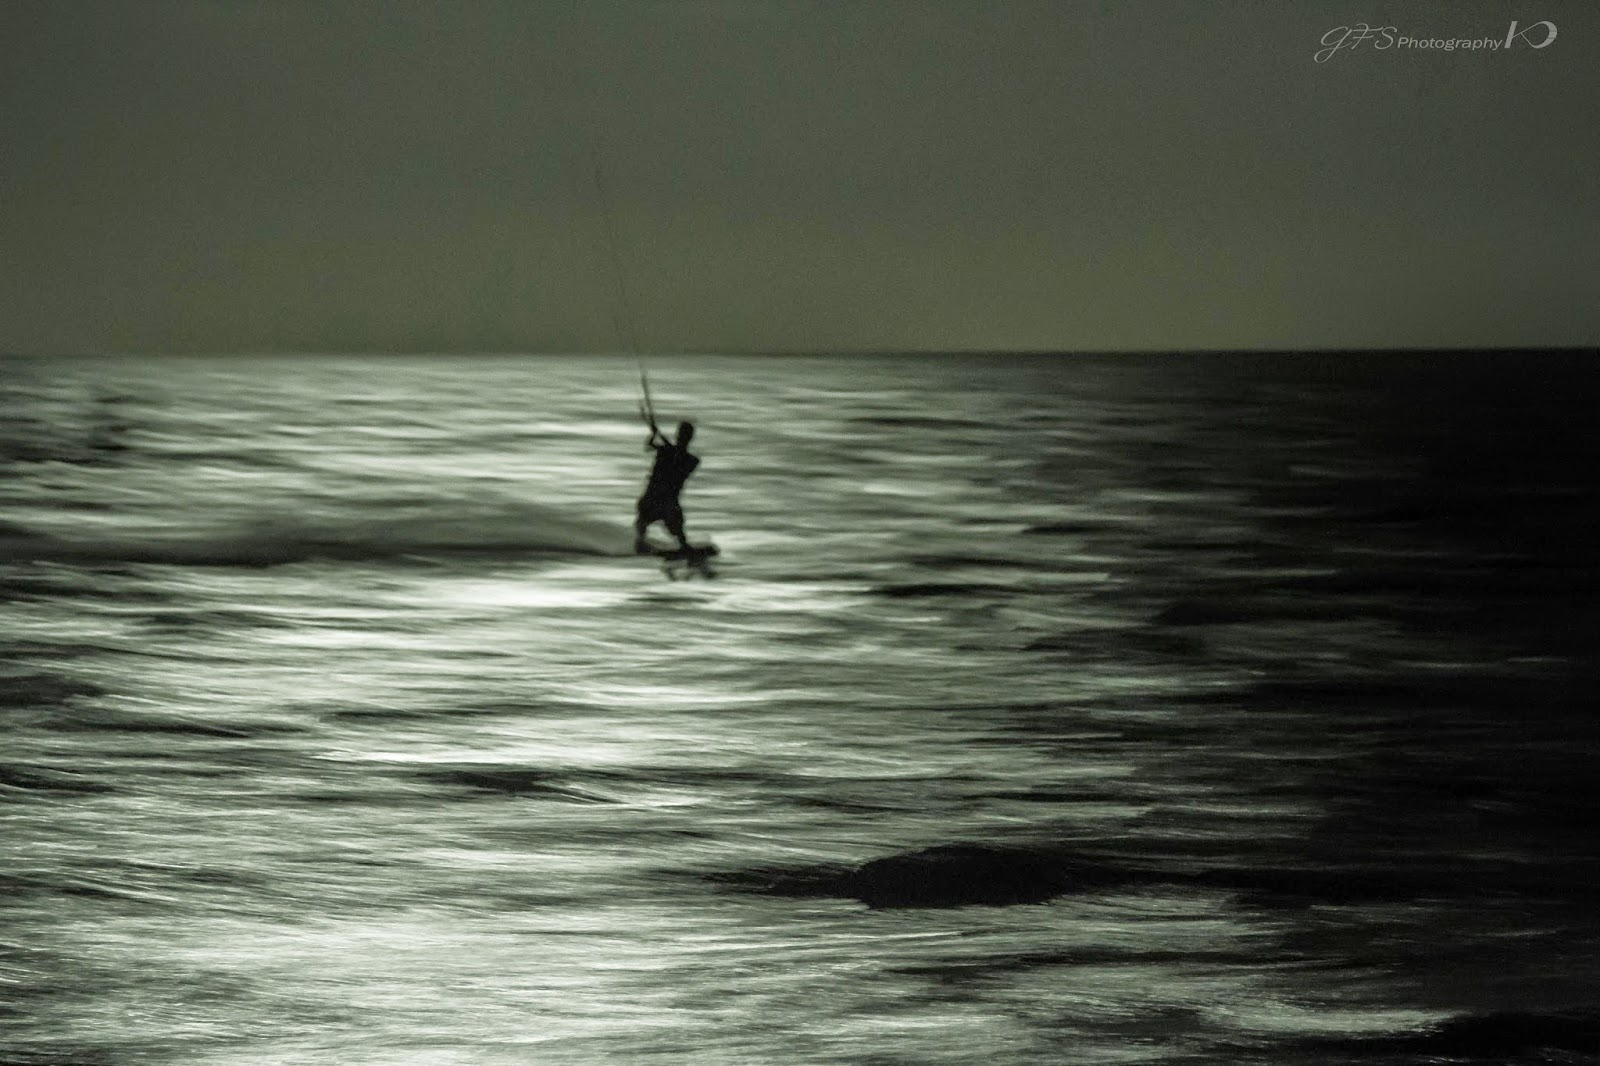 Full moon, Kitesurfing, session, kiteboarding